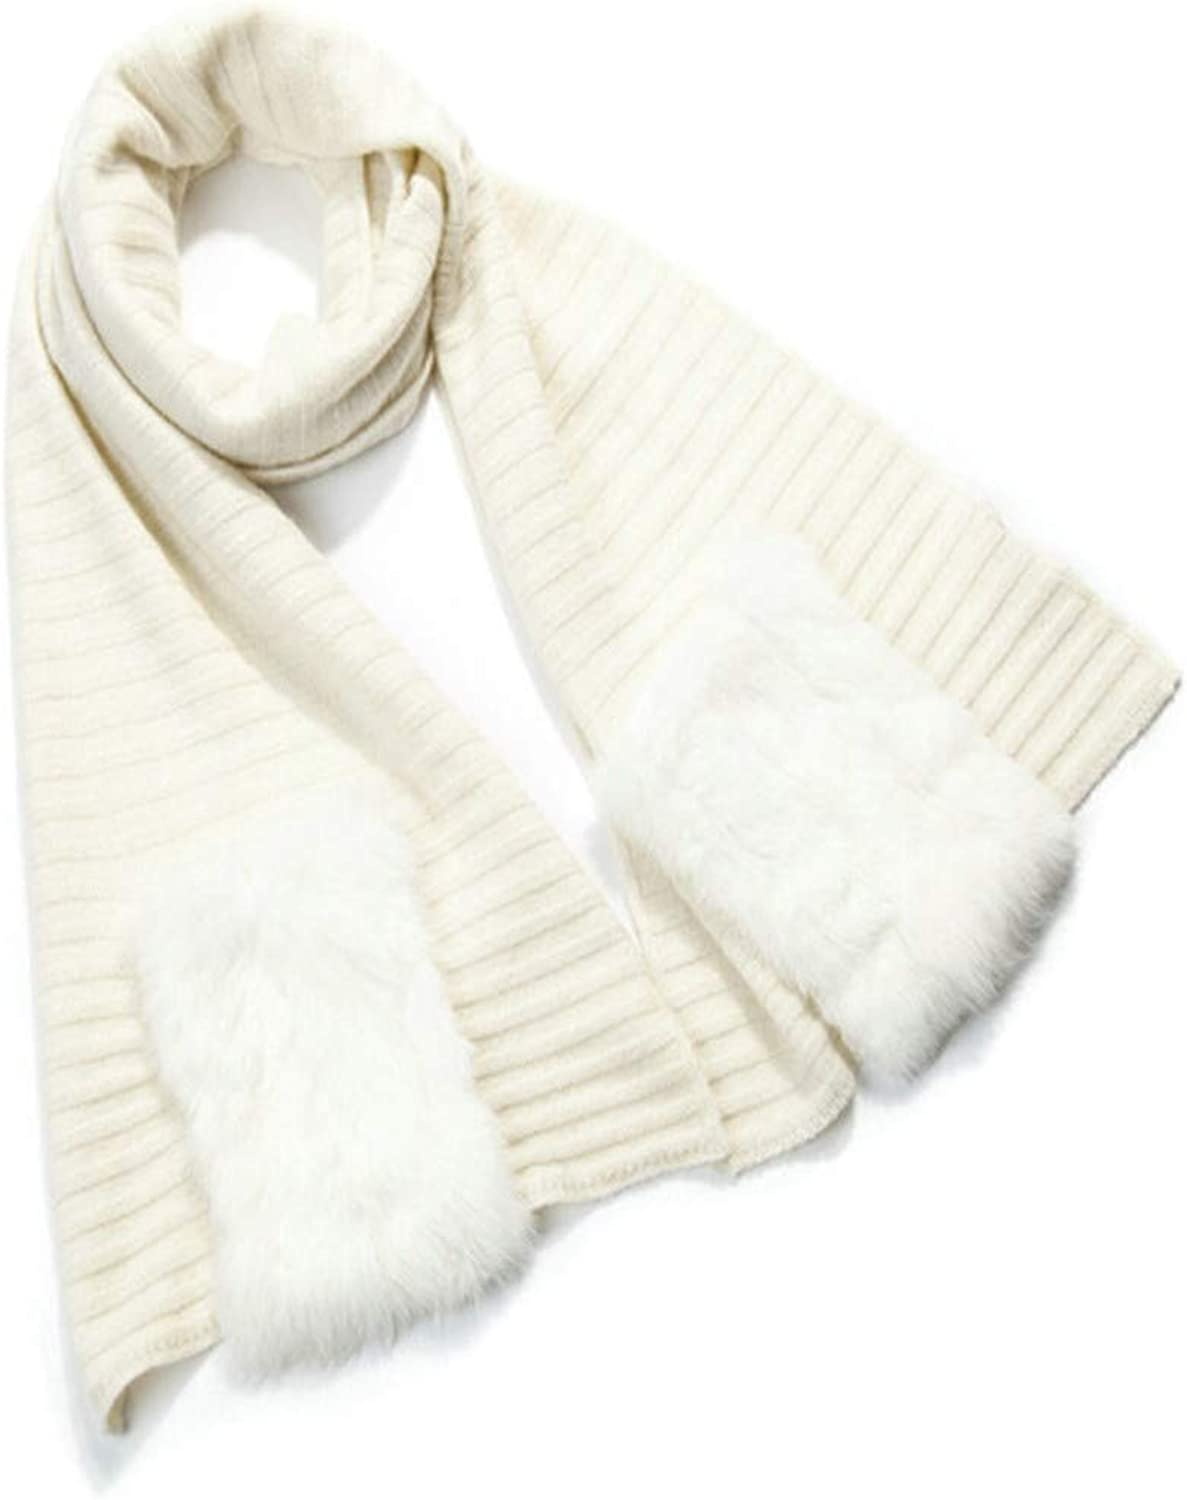 HYLIU Infinity Scarf Female winter scarf with pocket shawl Fashion warm white S